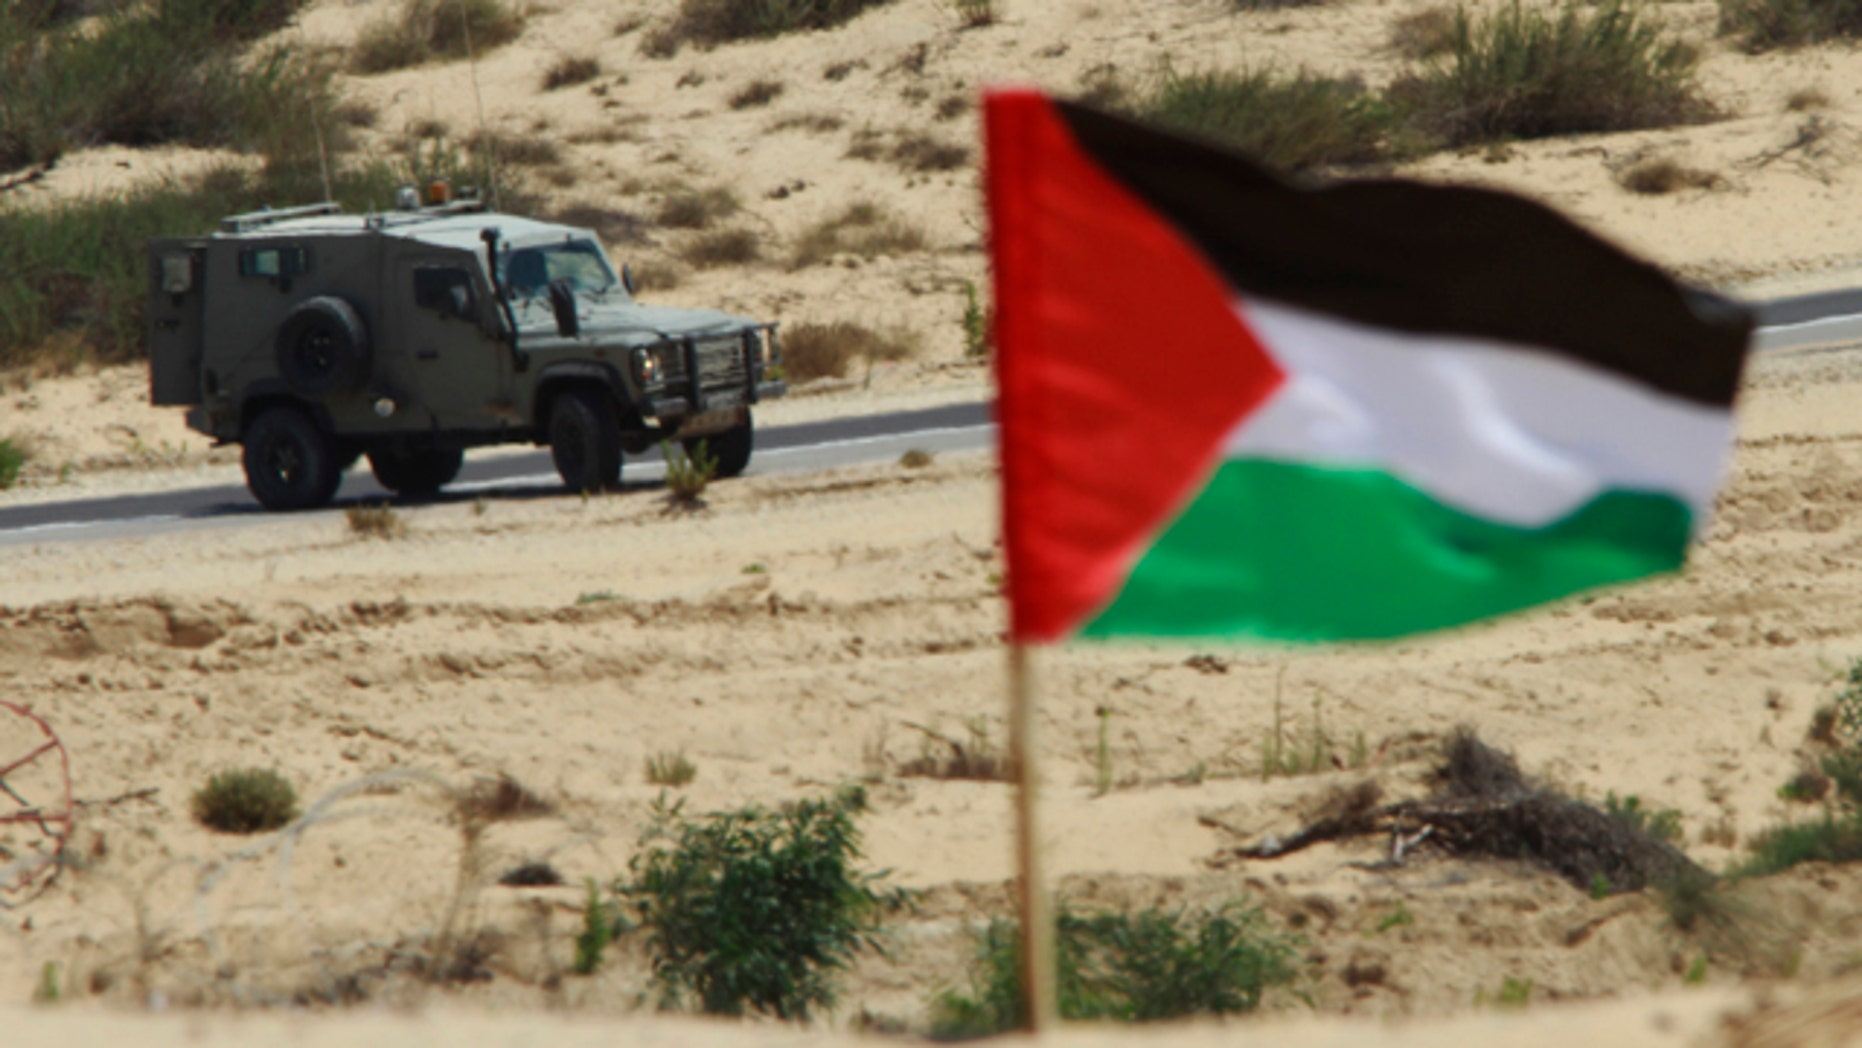 June 15: Israeli soldiers in a jeep patrol near the Gaza border as a Palestinian national flag set up by protesters waves in the foreground.